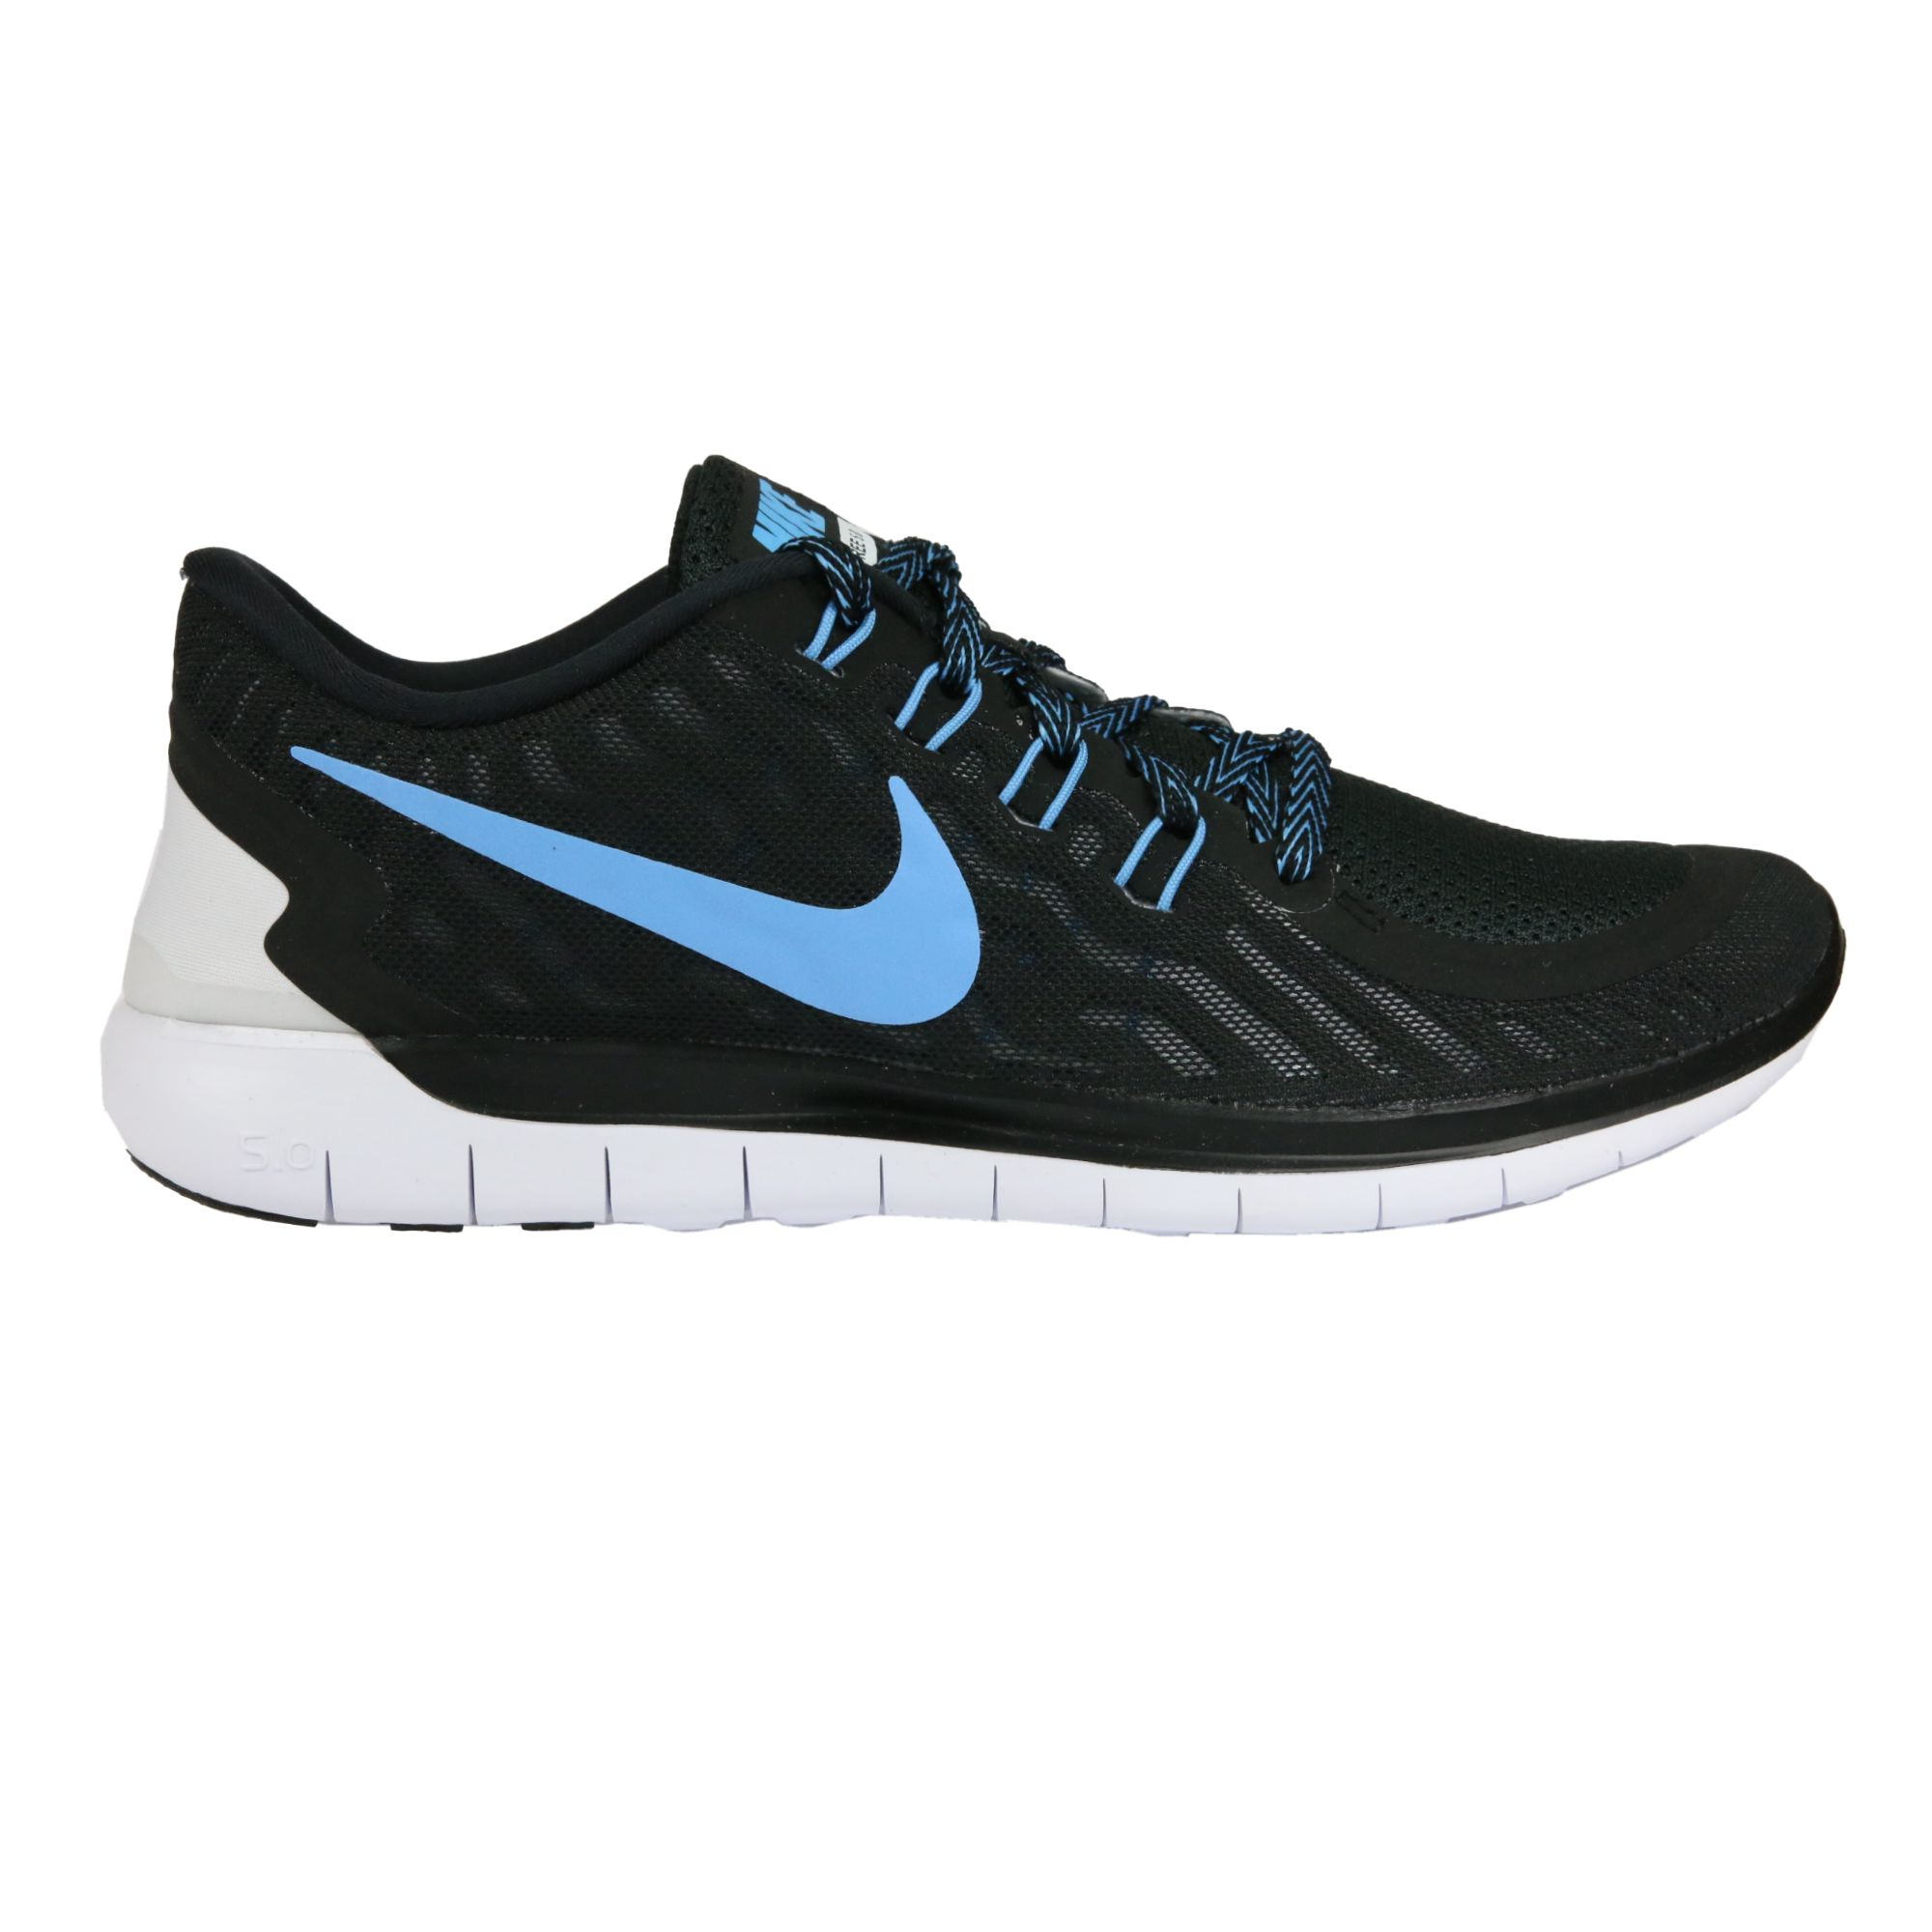 nike free 5 0 schuhe turnschuhe sneaker laufschuhe. Black Bedroom Furniture Sets. Home Design Ideas